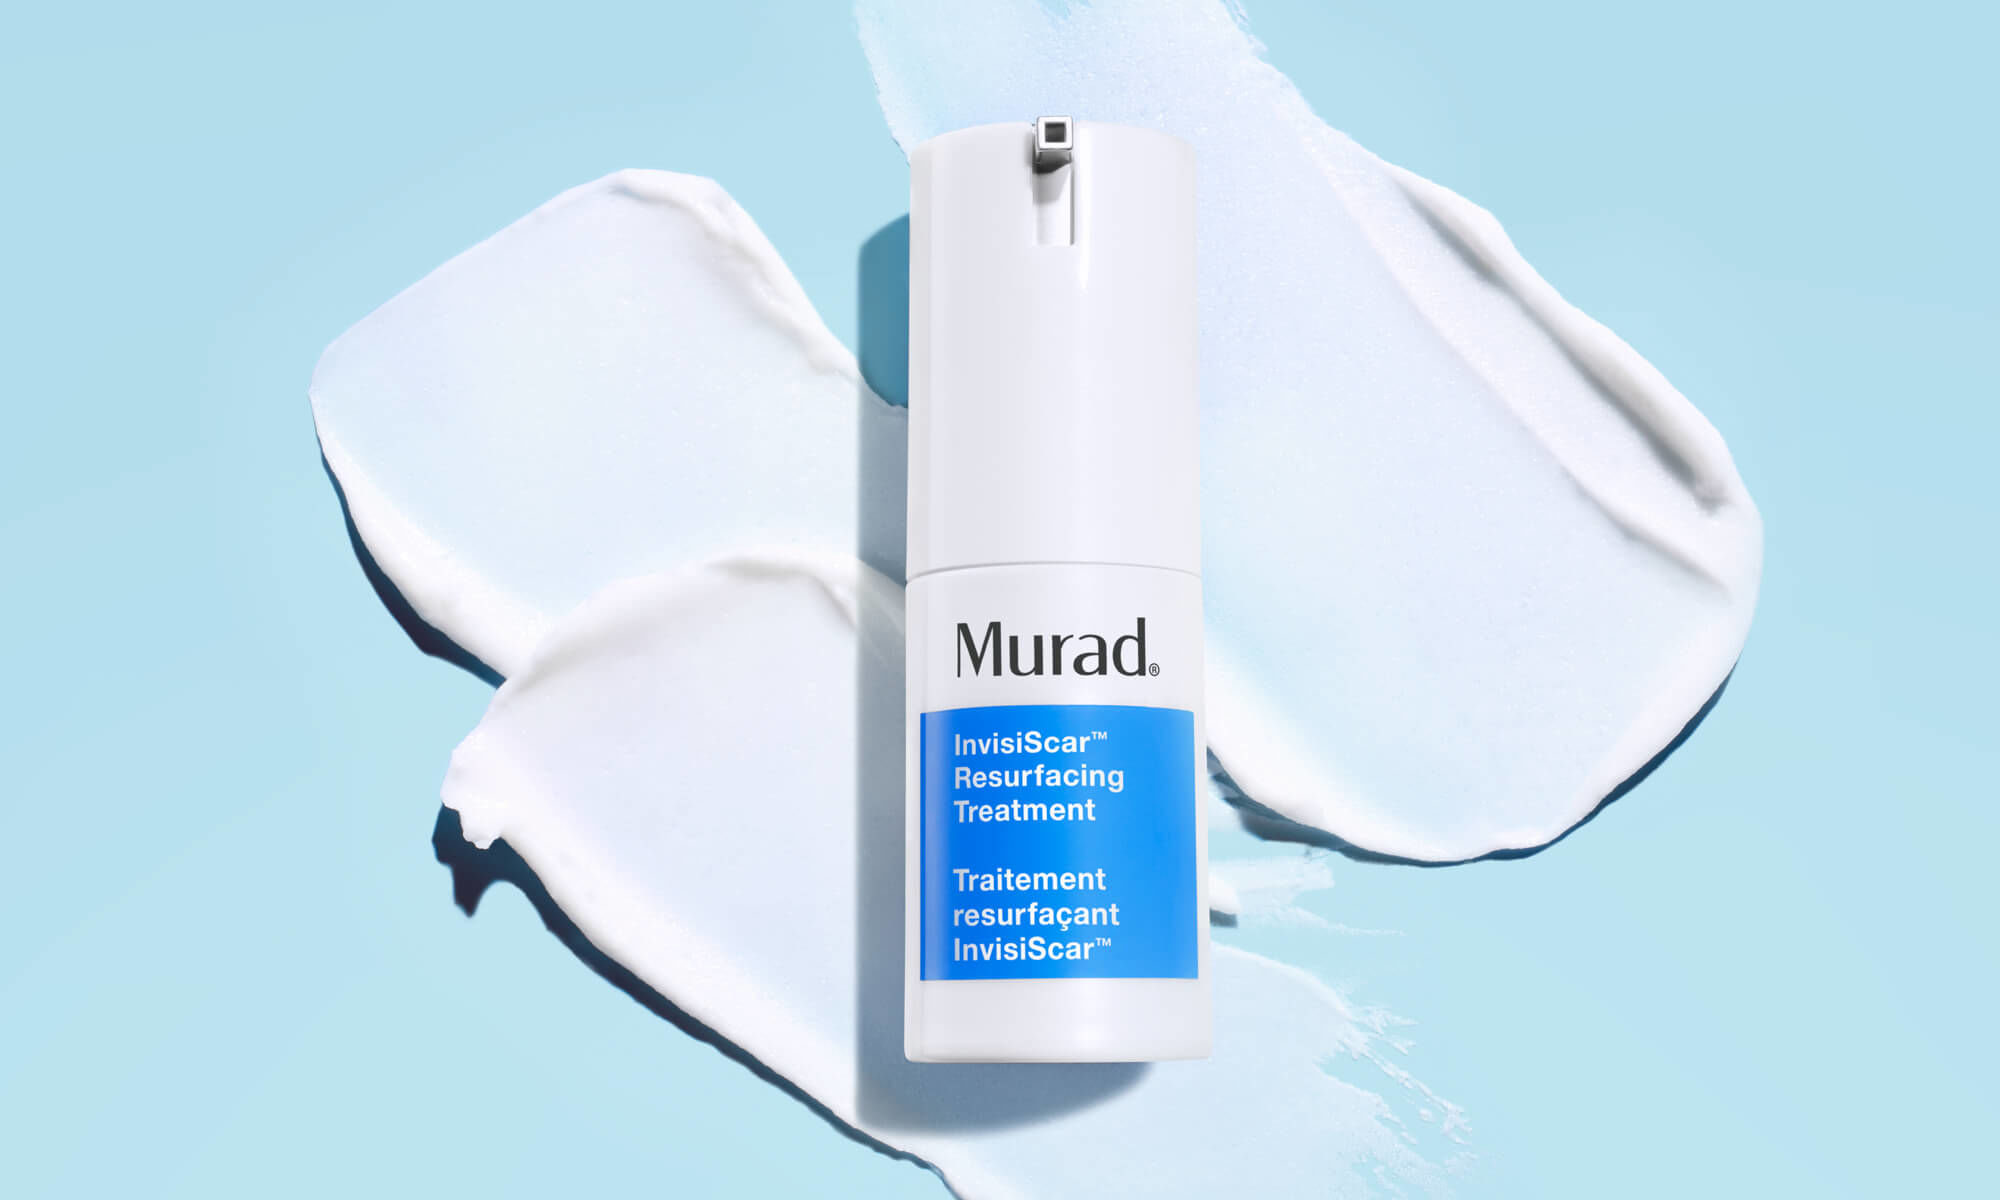 223ef556 c23c 41dd 9863 0b401655052e murads invisiscar resurfacing treatment